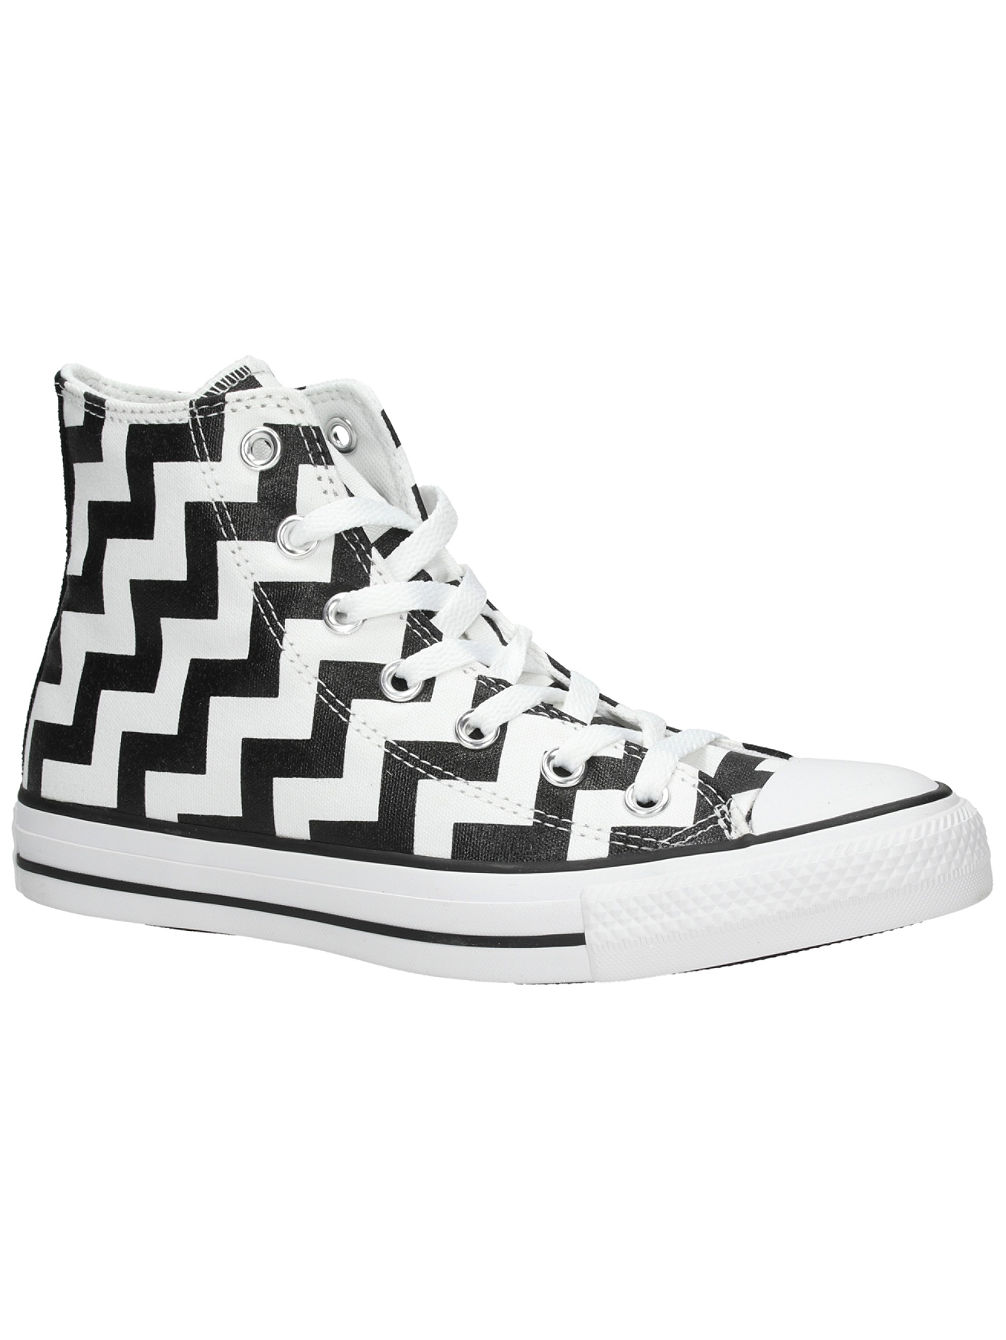 Chuck Taylor All Star Glam Dunk Sneakers